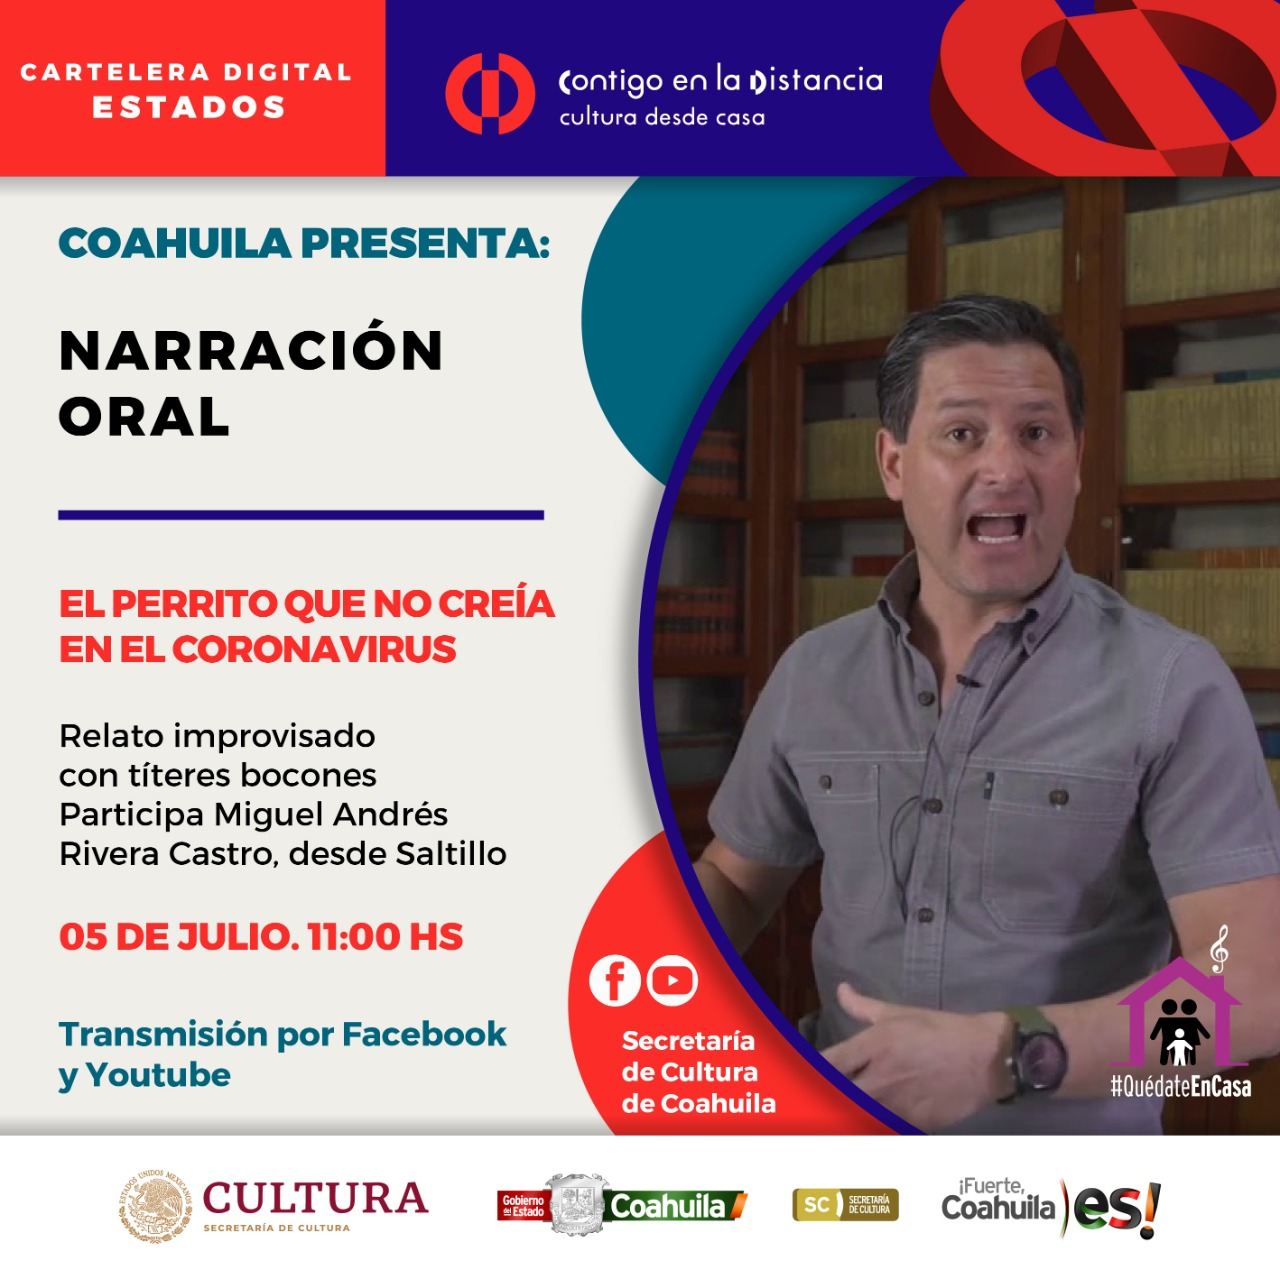 Coahuila presenta: Narración oral.